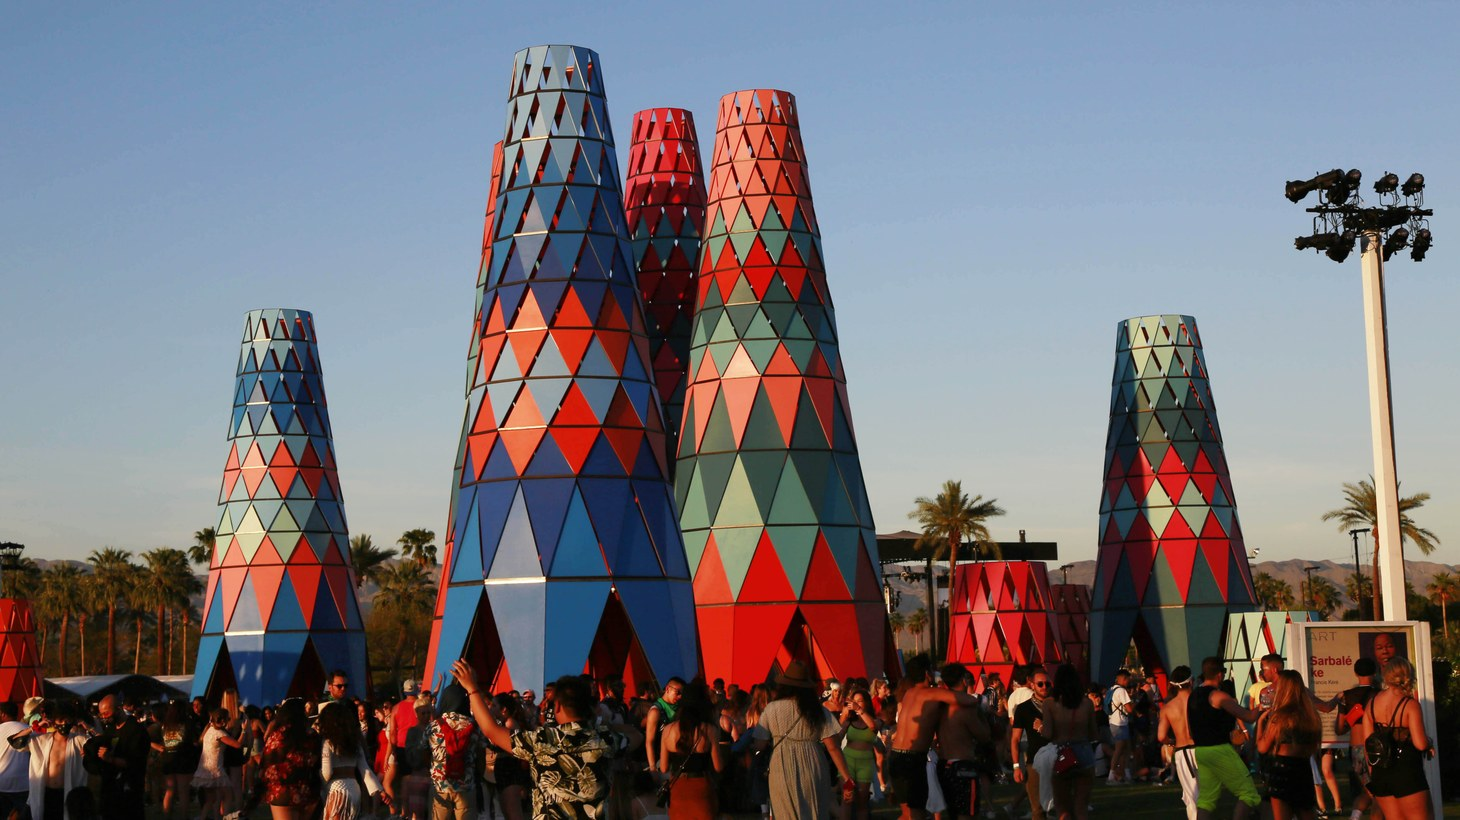 """The architect Francis Kéré based his installation """"Sarbale Ke"""" on the baobab trees of his home country of Burkina Faso."""